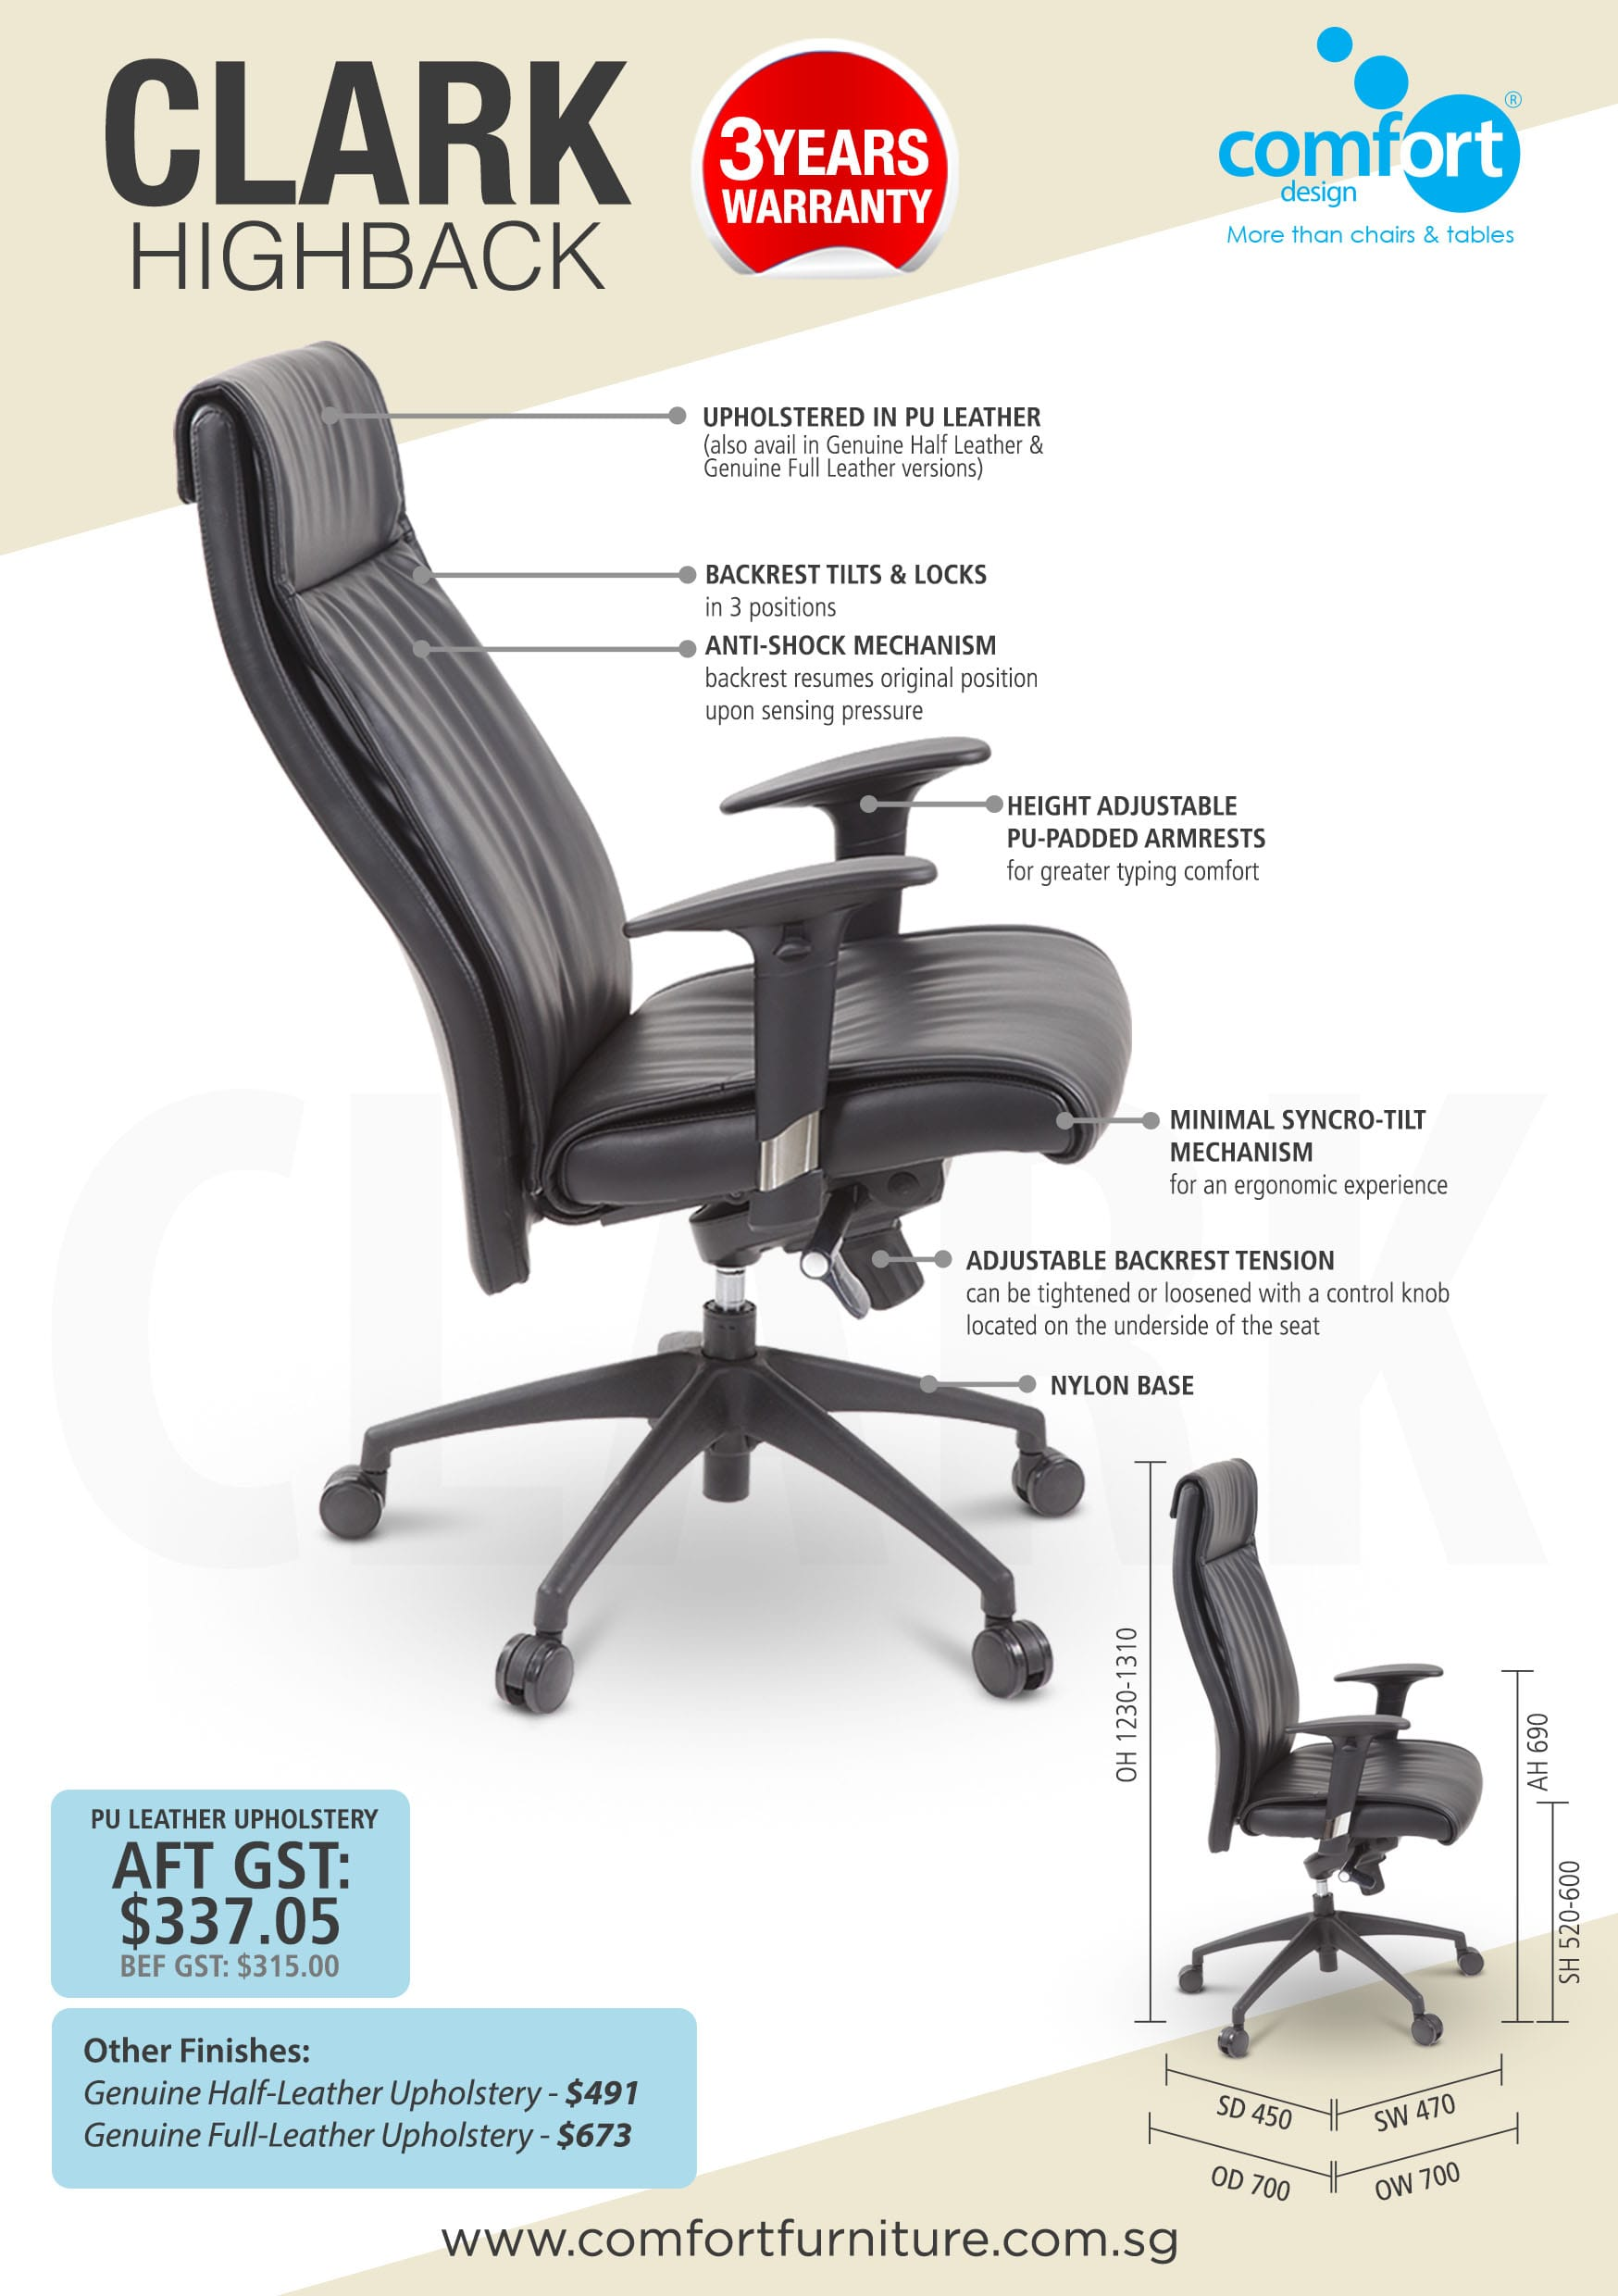 Clark Highback Office Chair Comfort Design The Chair